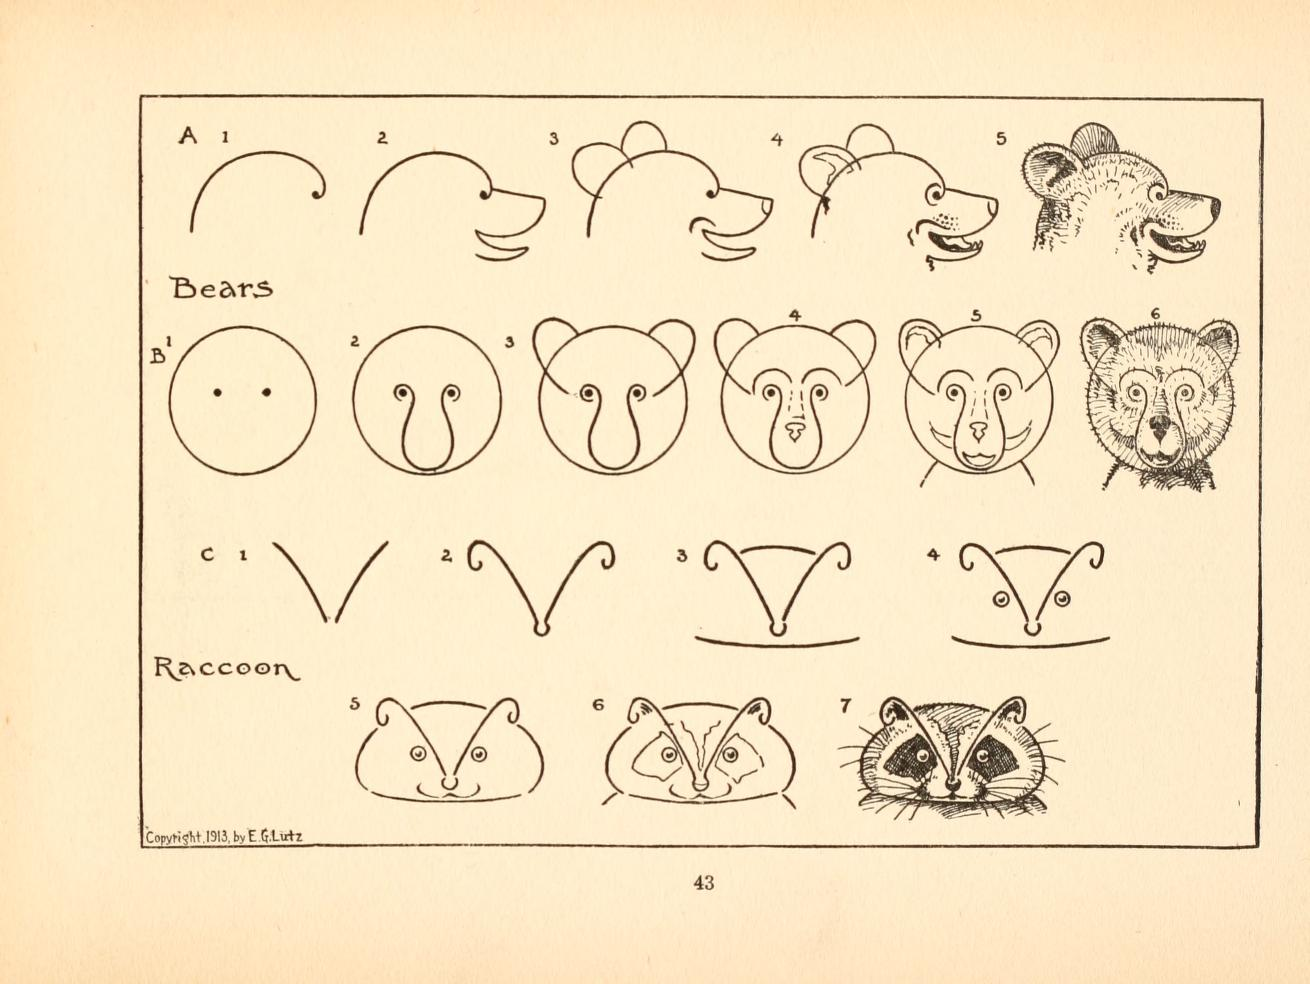 what to draw and how to draw it 1913 present correct